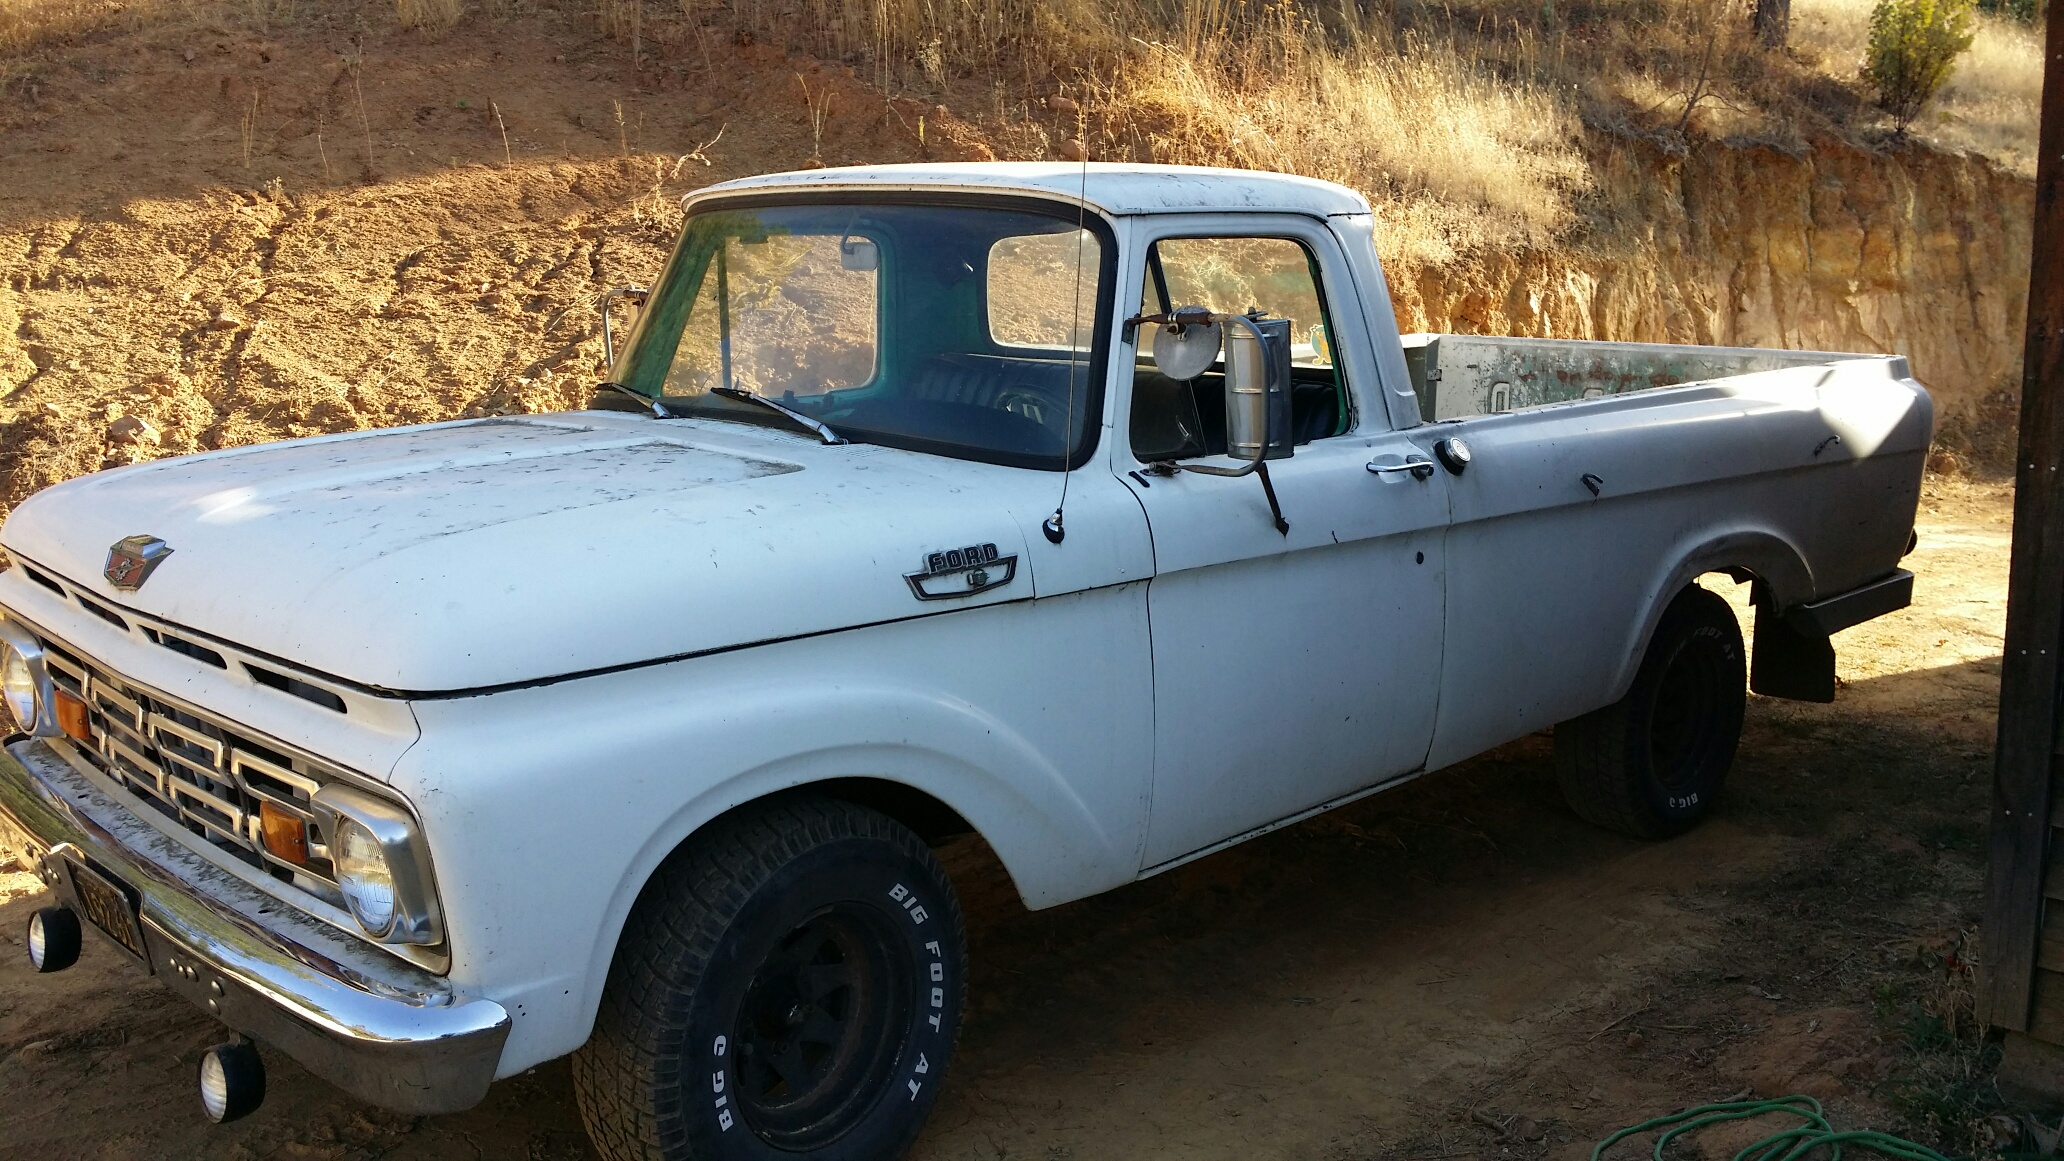 1963 ford f100 unibody long bed full 54 parts the h a m b. Black Bedroom Furniture Sets. Home Design Ideas